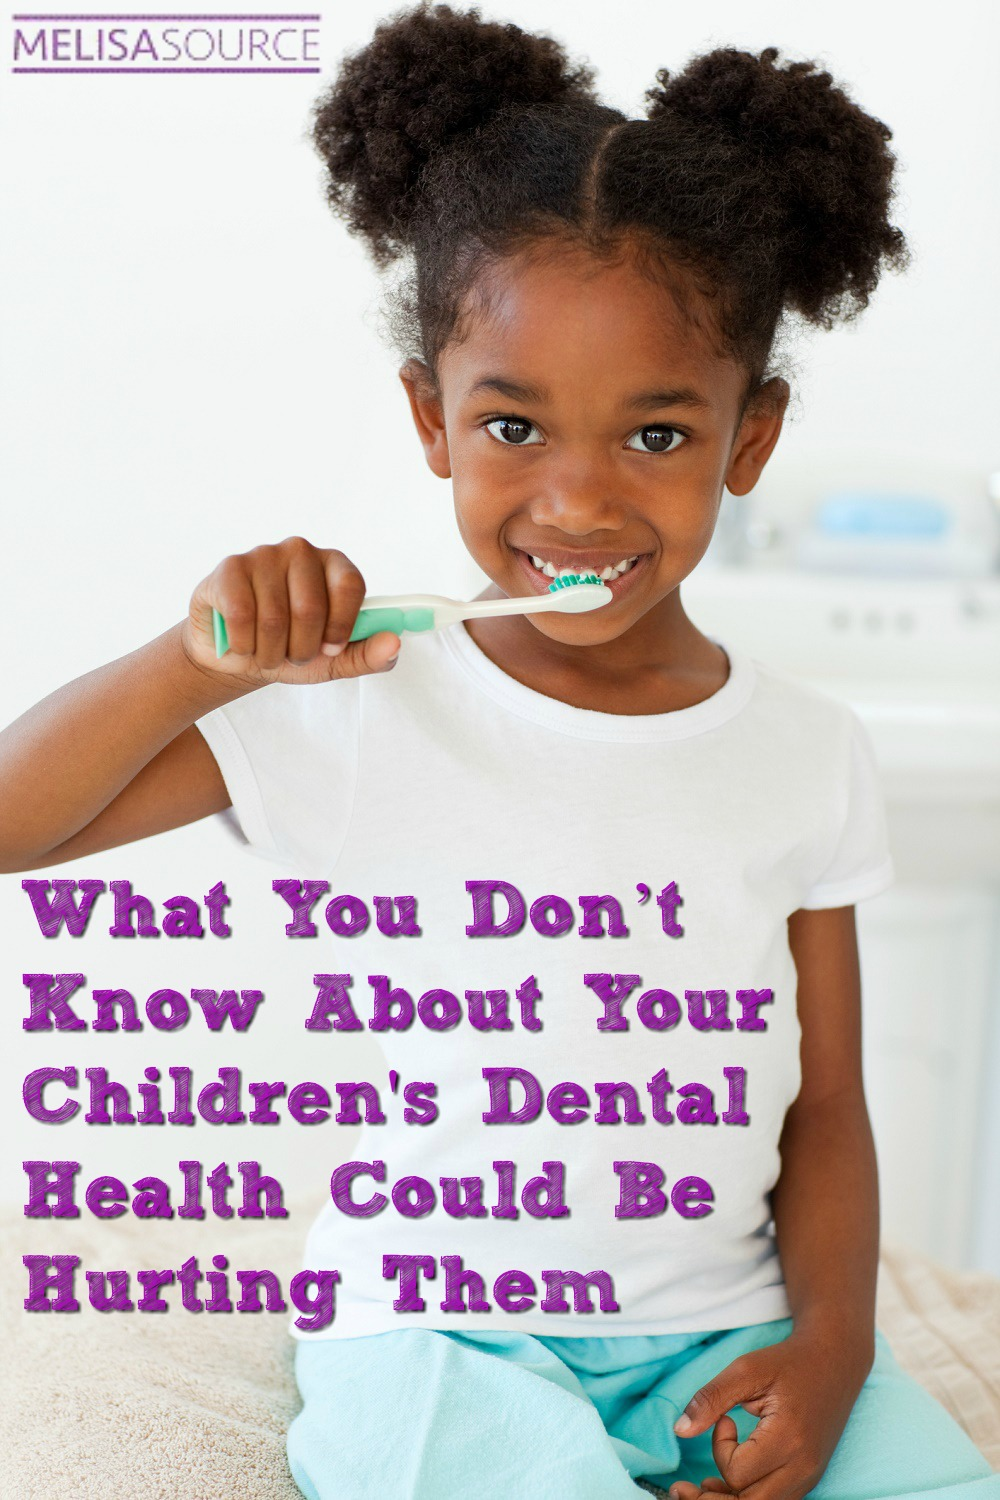 What You Don't Know About Your Children's Dental Health Could Be Hurting Them